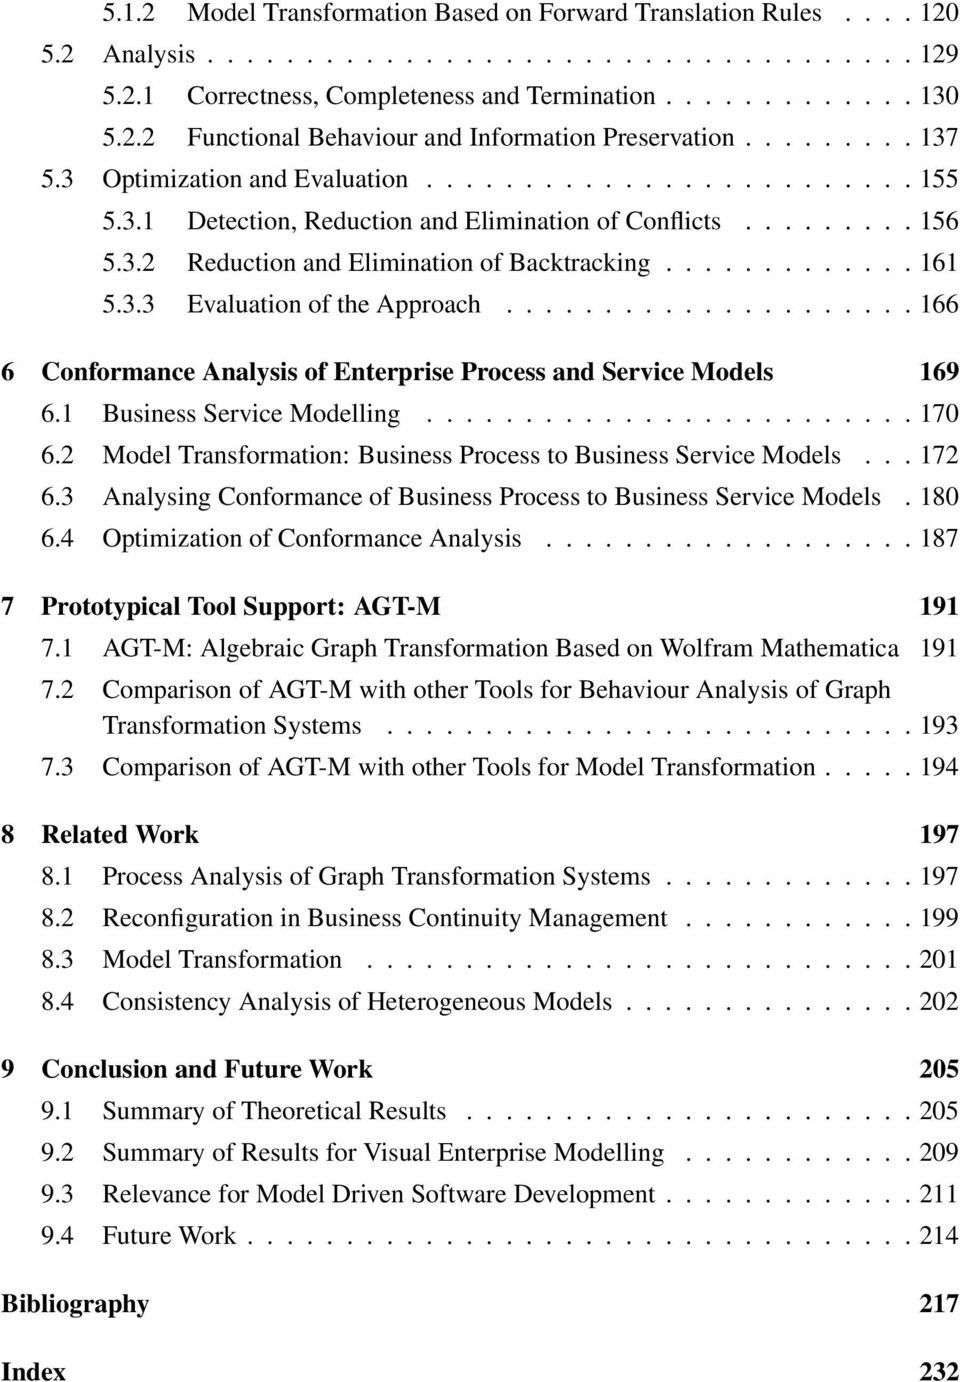 3.3 Evaluation of the Approach..................... 166 6 Conformance Analysis of Enterprise Process and Service Models 169 6.1 Business Service Modelling......................... 170 6.